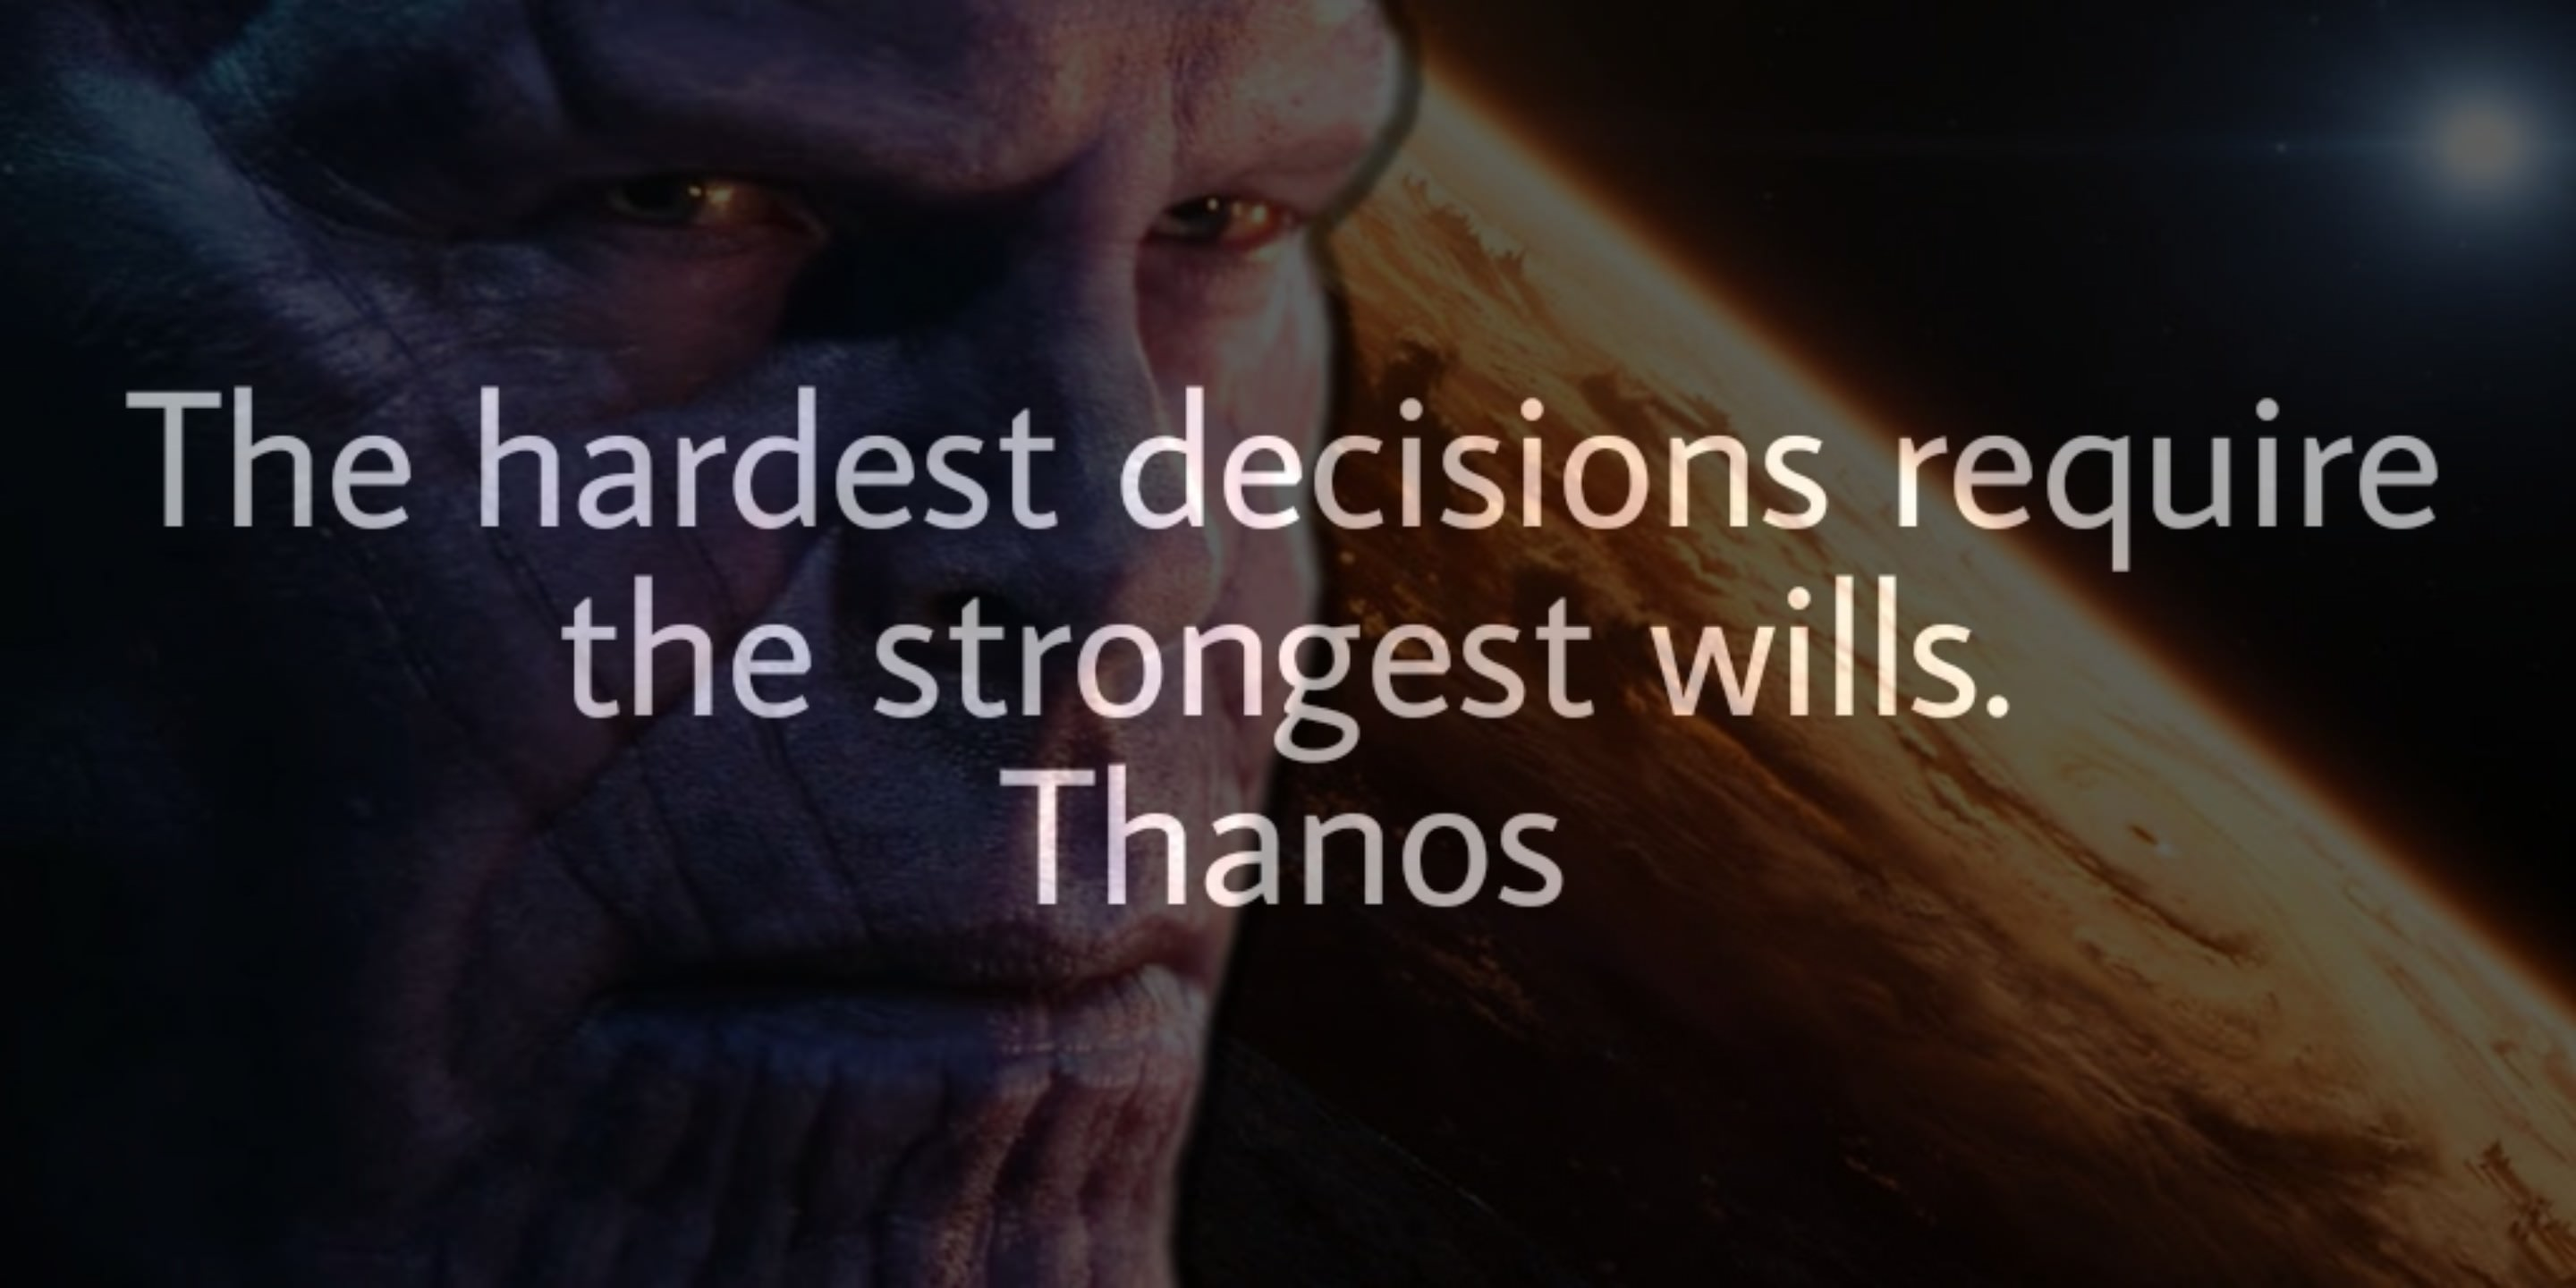 """The hardest choices require the strongest wills."" – Thanos [OC] [2880 x 1440]"